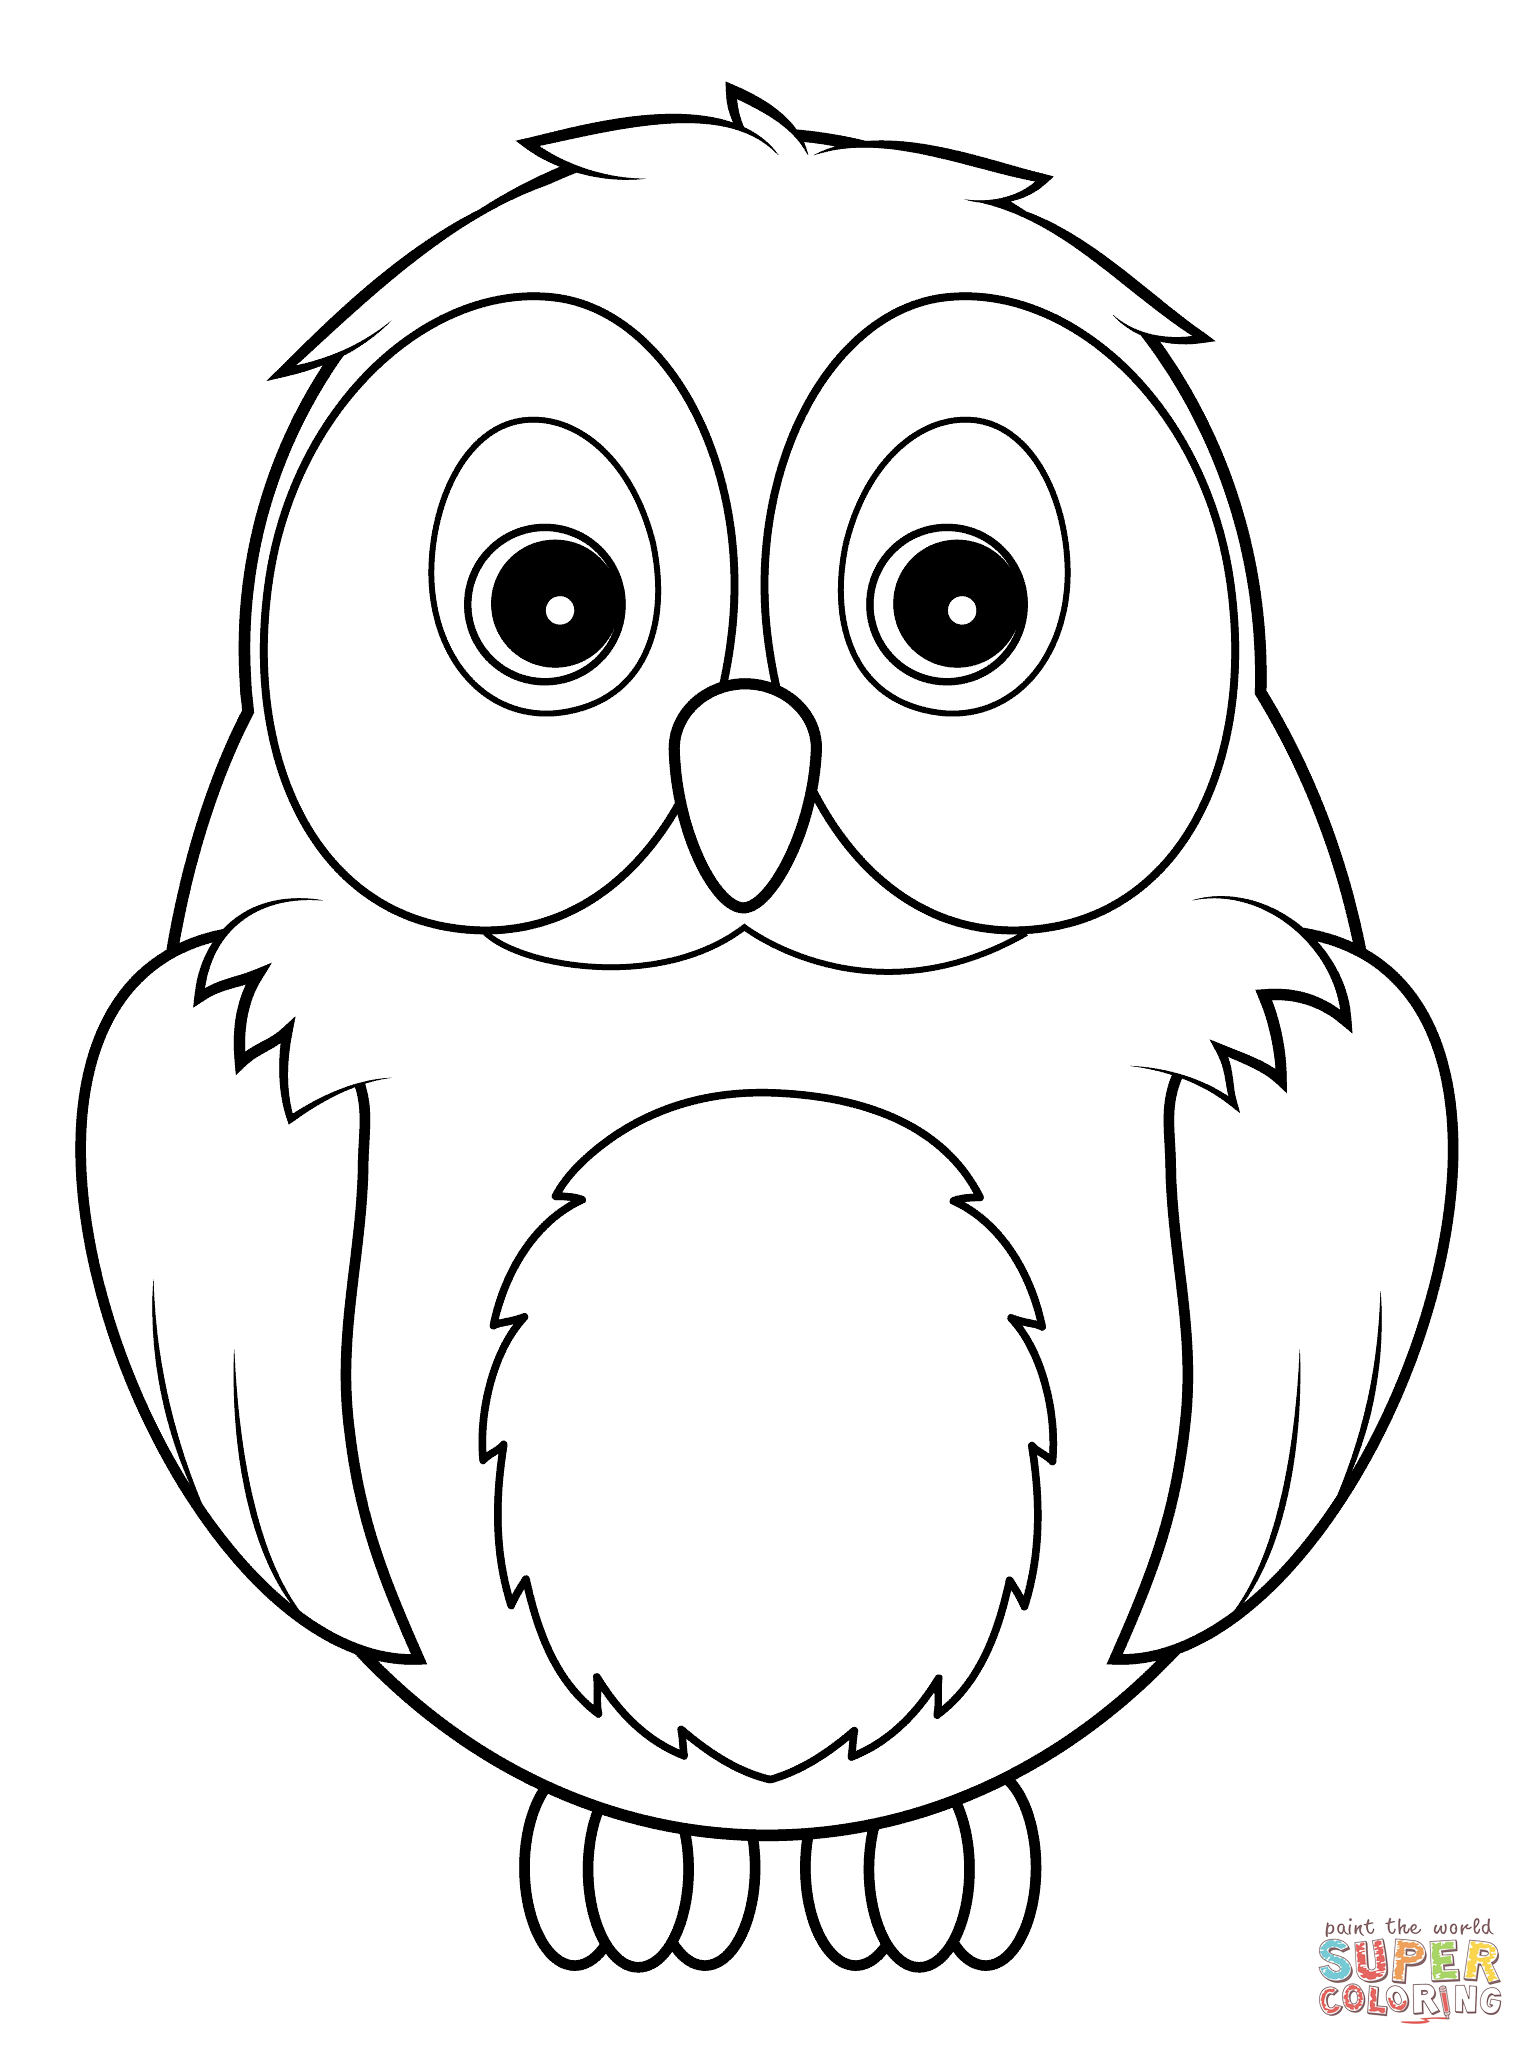 Gallery Photos For Owl Coloring